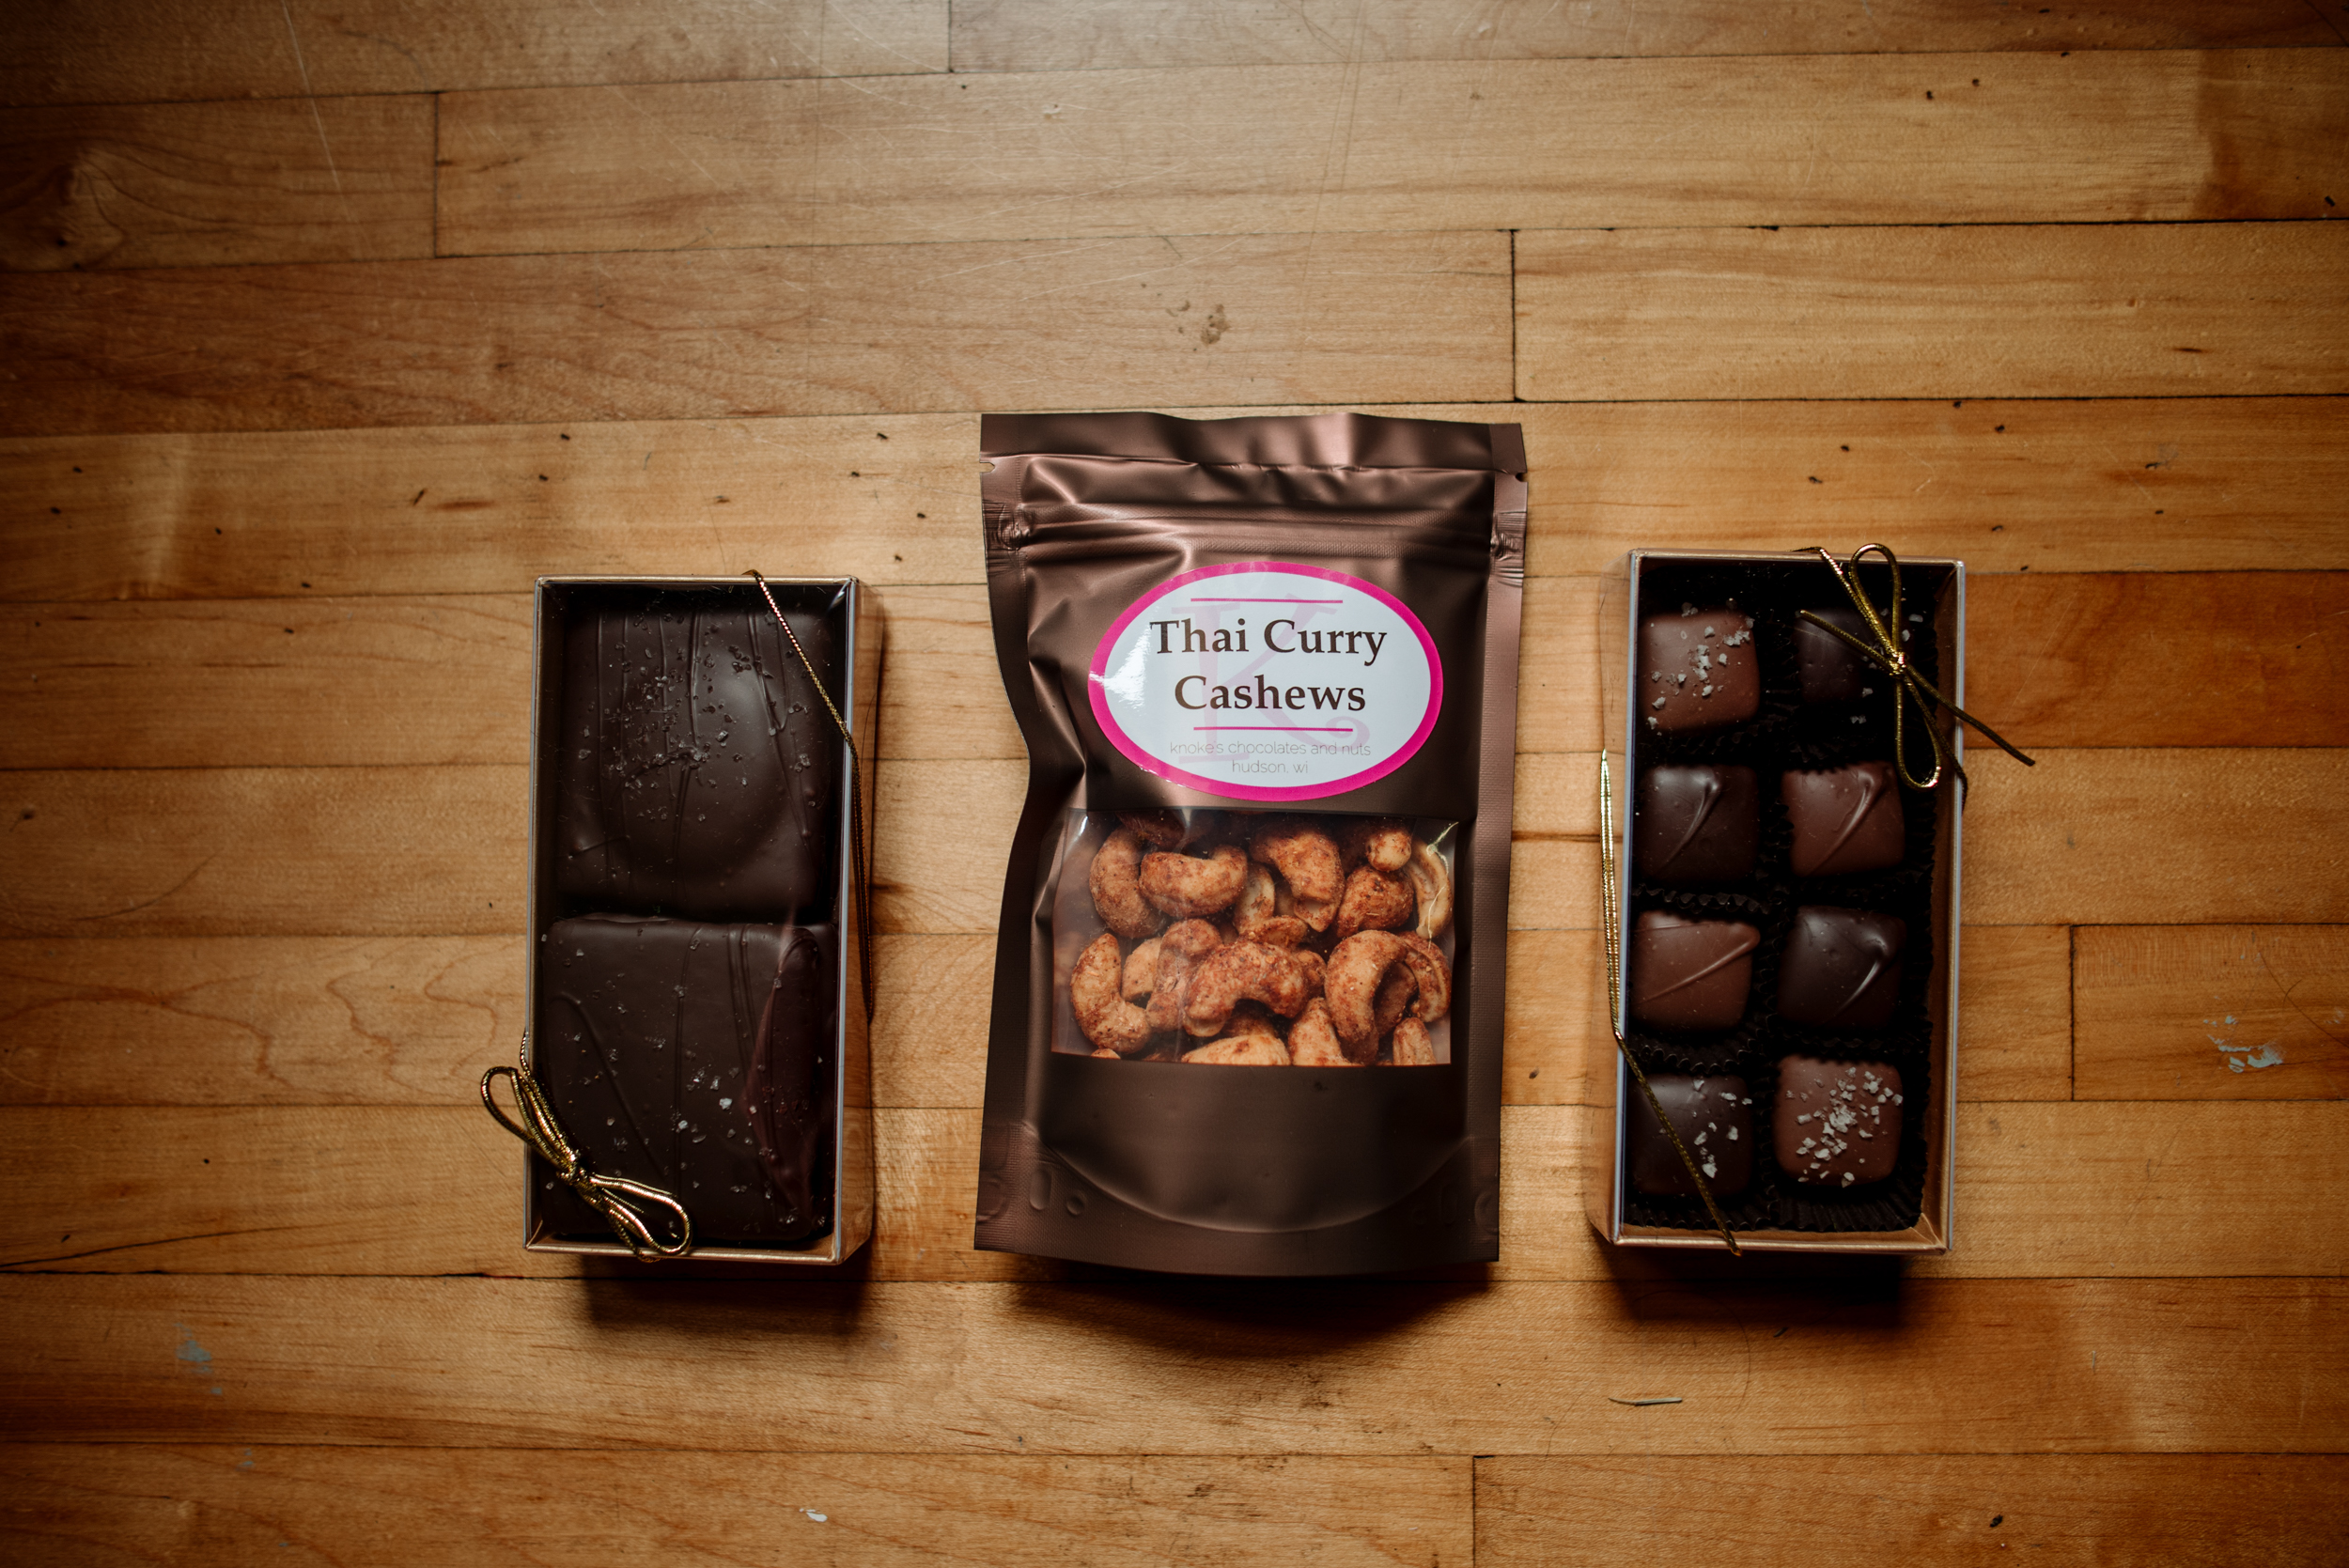 A medley of Caramel Graham Crackers, Thai Curry Cashews, & eight piece Box of Caramels// Photo by Becca Dilley